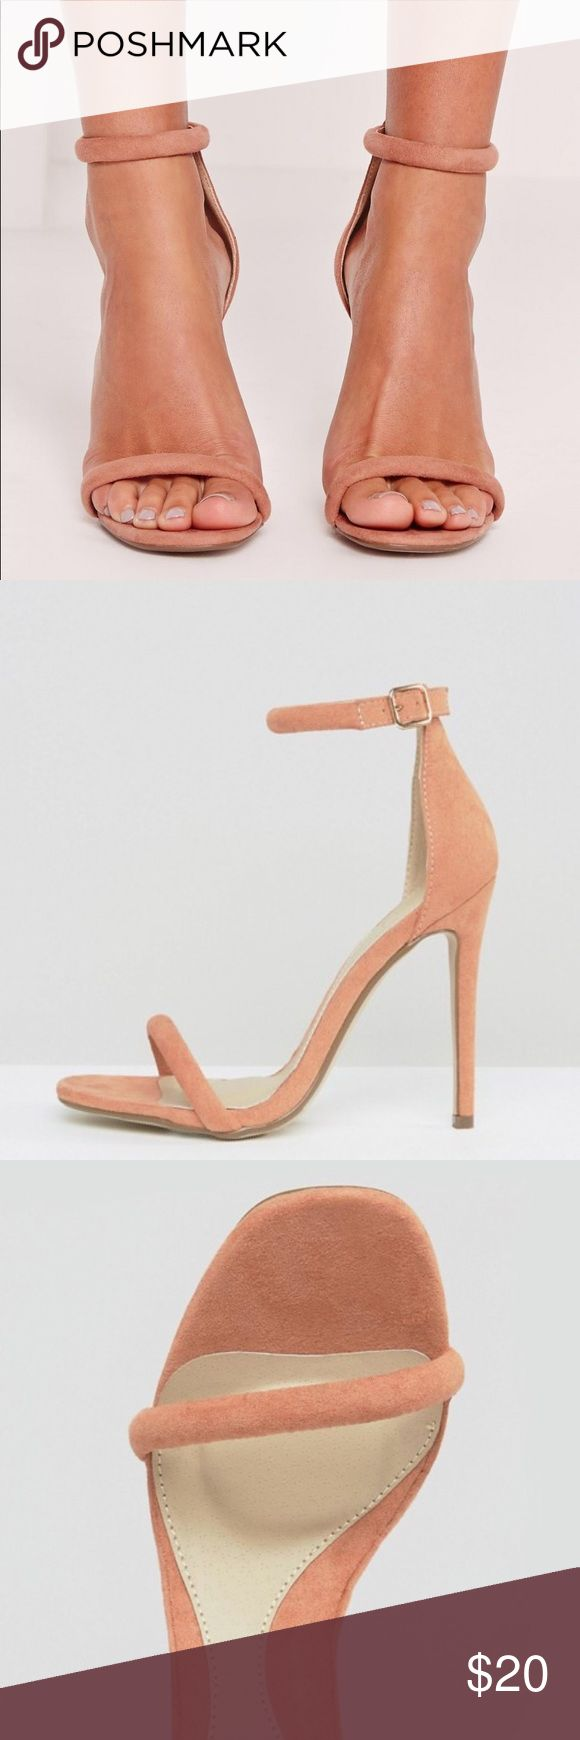 "NWT Missguided Strap Barely There Sandals Round Strap Sandals Faux Suede Approx heel height 11cm/4.5"" Blush Pink Size: US 7/ UK 5/ Europe 38 Missguided Shoes Heels"